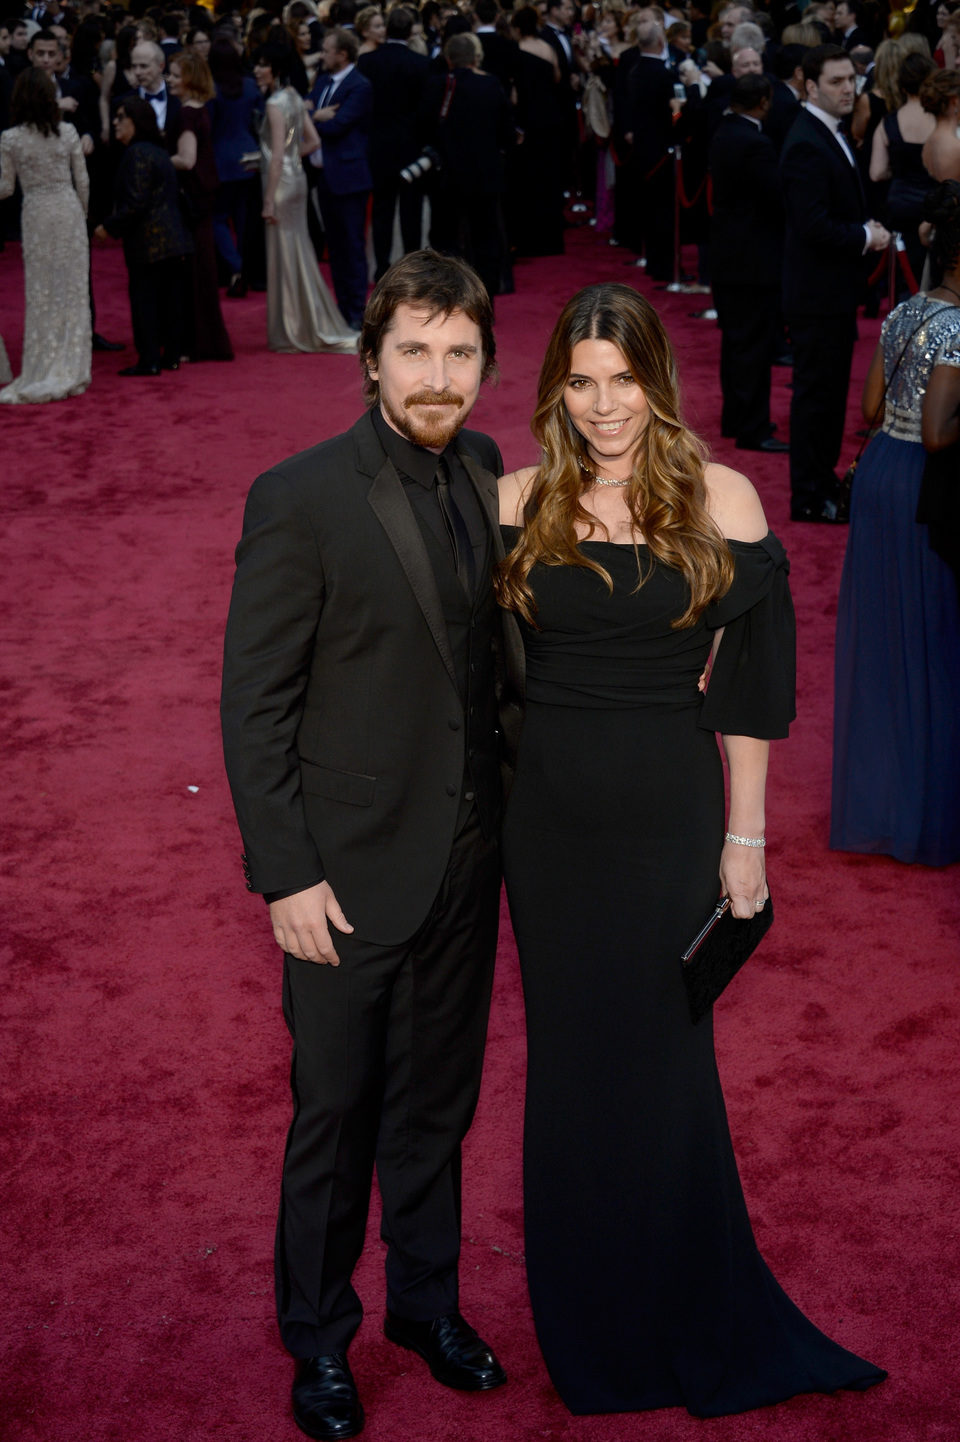 Christian Bale and Sibi Blazic at the 2014 Oscars